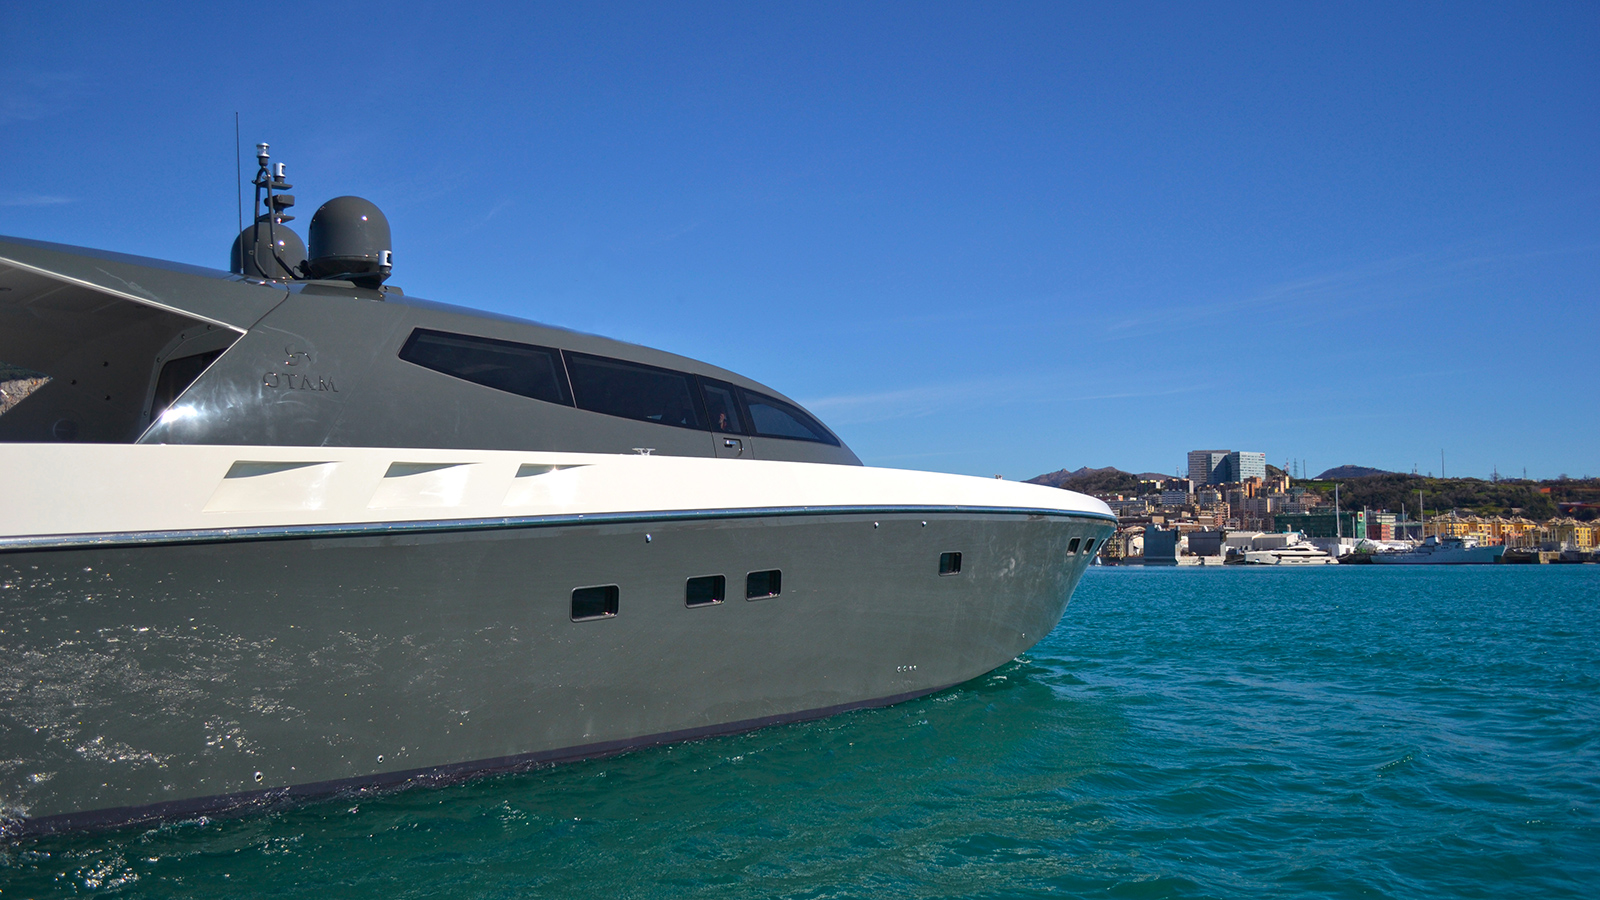 side-view-of-the-otam-millenium-80ht-yacht-mystere